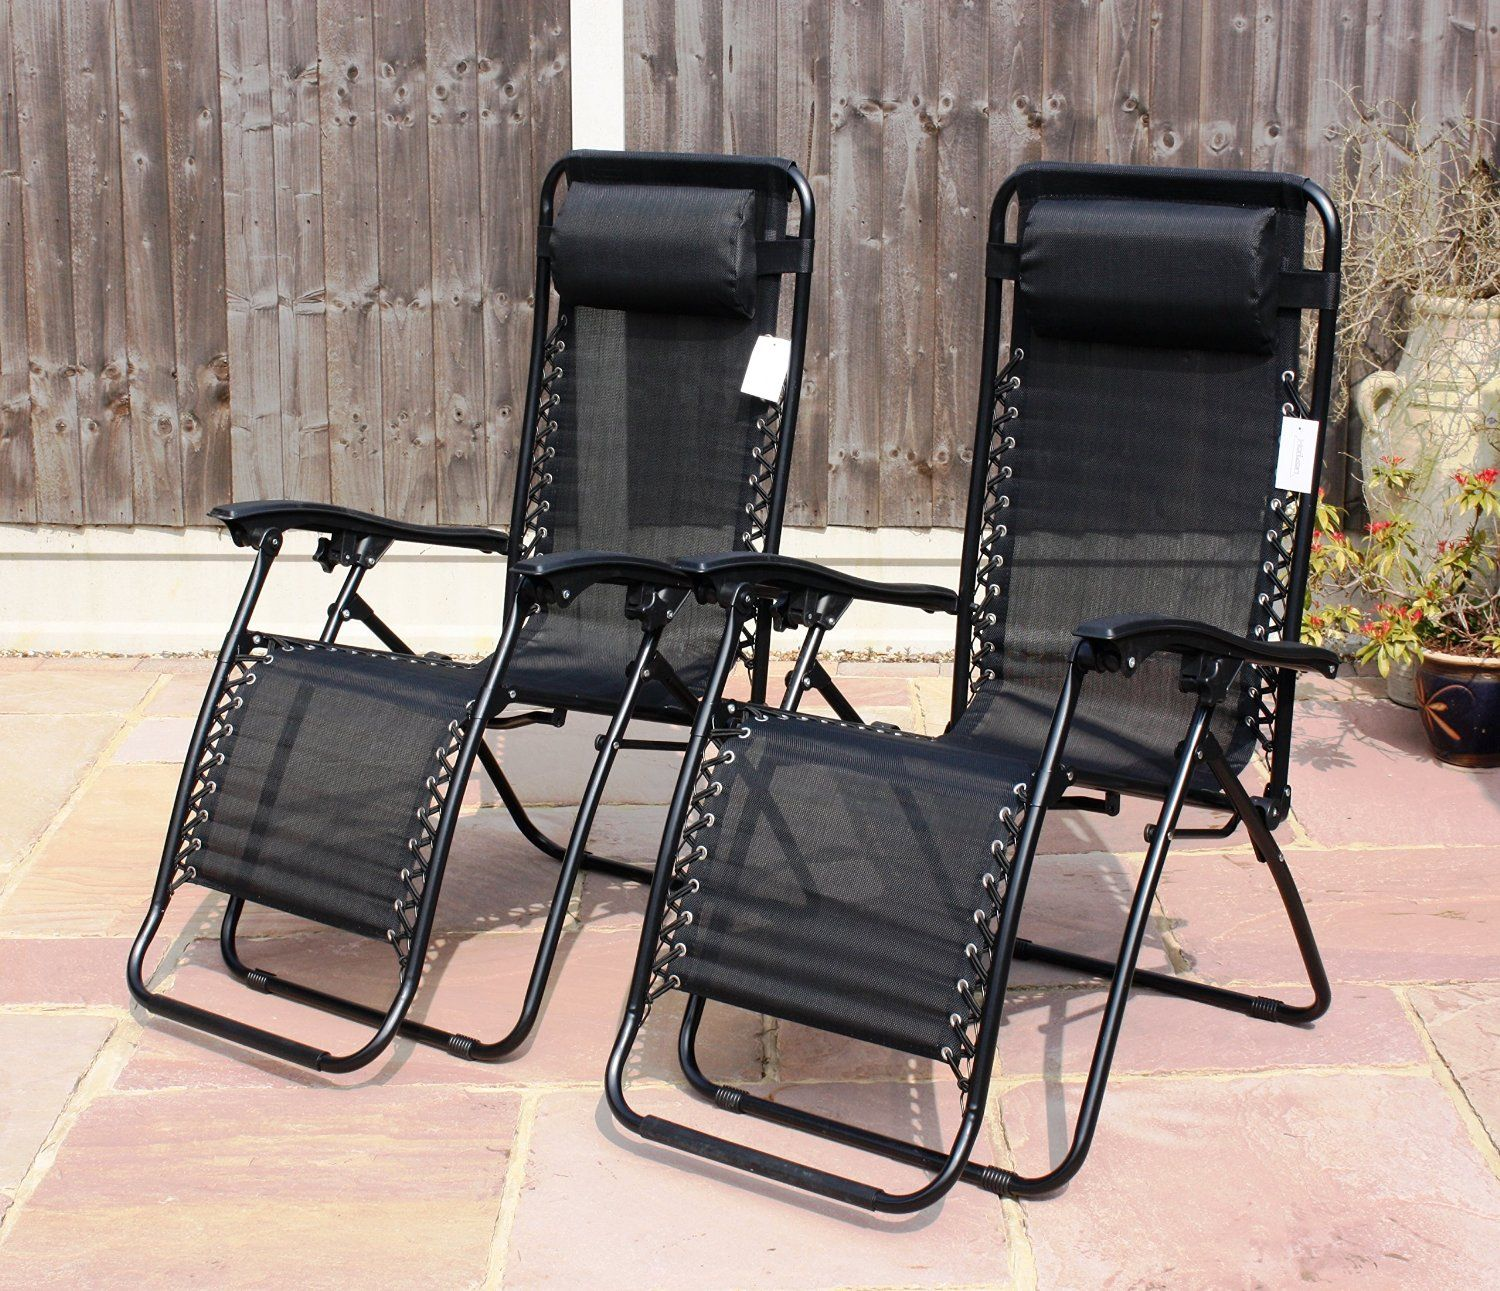 set of 2 garden gravity sun lounger folding sun bed relaxing reclining chairs - Garden Furniture Loungers